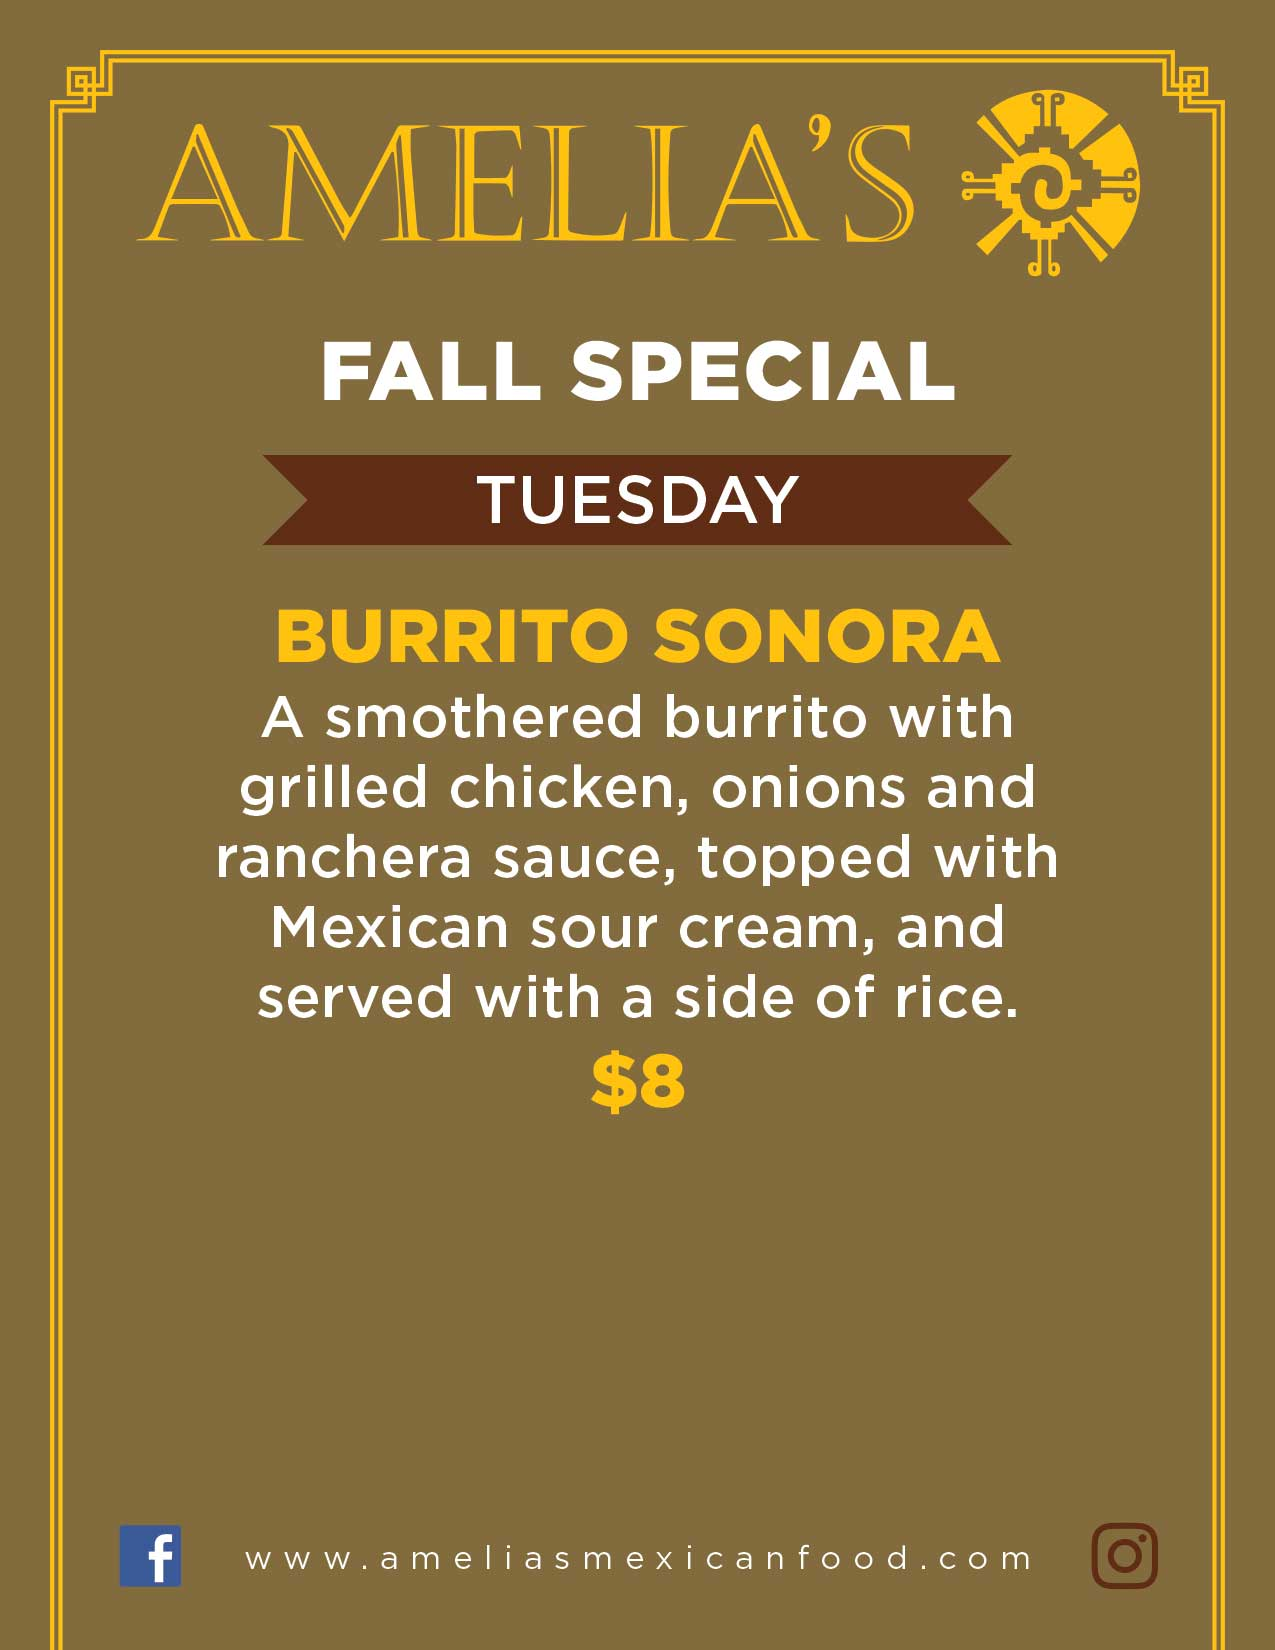 Image of Tuesday Specials